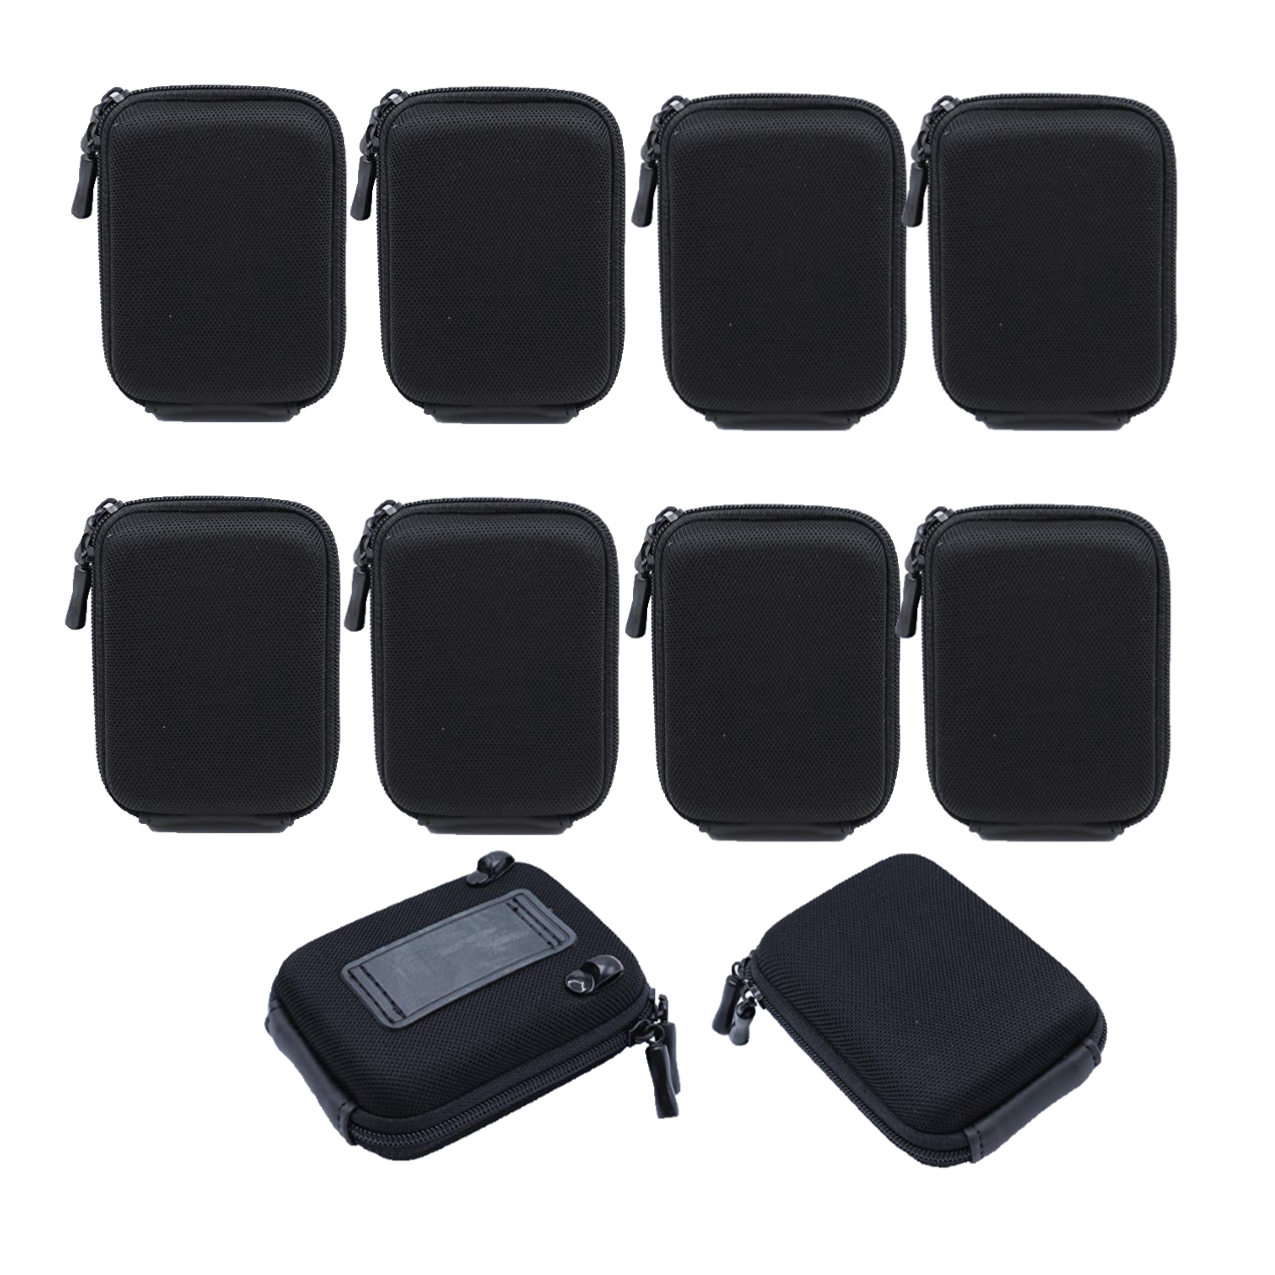 Solibag Carry Case -5001 Hardcase Pure Black L (With Shoulder Strap And Belt Loop) Suitable For Example Cybershot Dsc Hx60 Hx90 – Coolpix S9900 W100 W150 – Lumix Dmc Tz70 Tz80 – Powershot Sx710 Sx720 Pack Of 10Pcs Camcorder & Camera Accessories Camera Bags